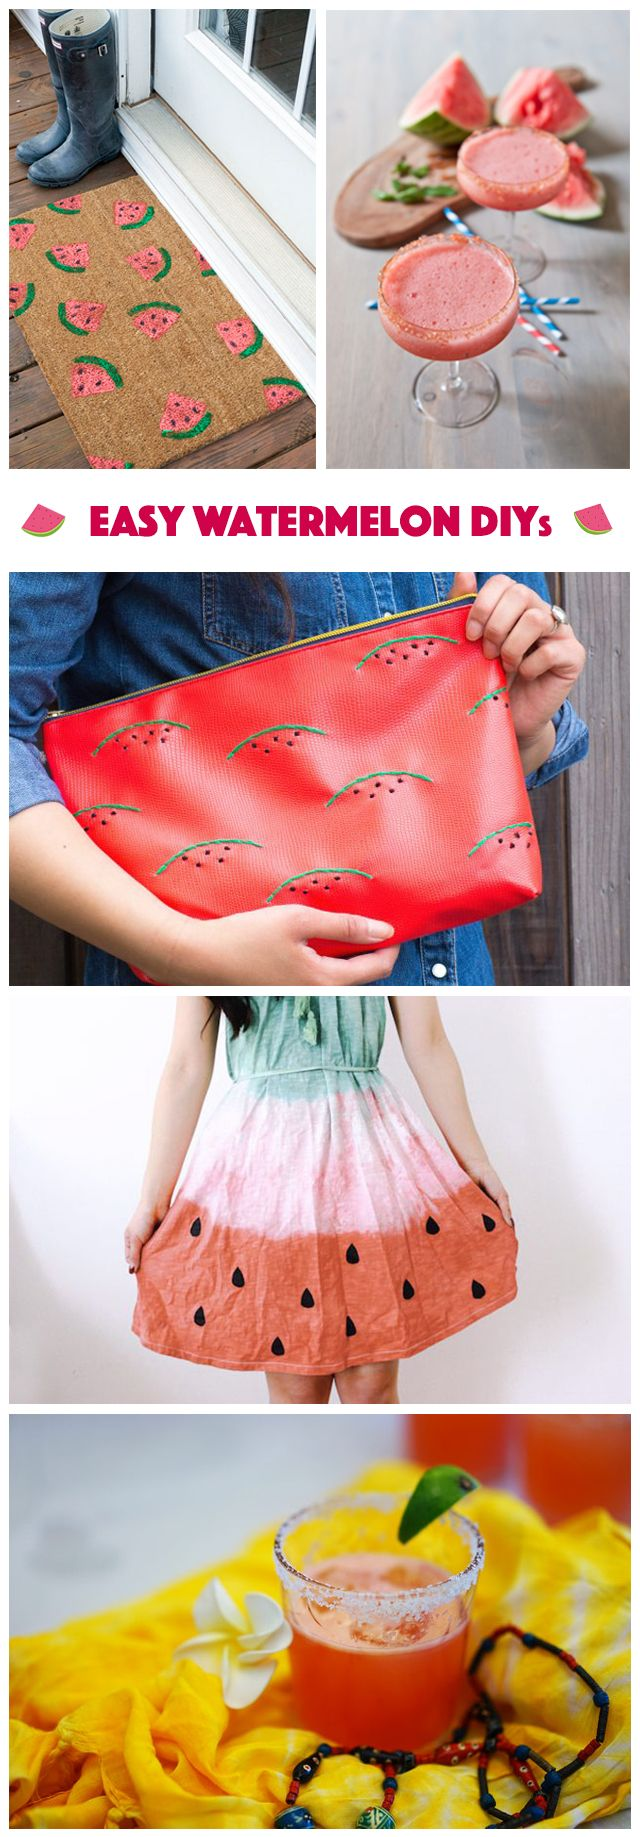 Who doesn't love a juicy watermelon? They are such a summer staple and inspire everything from our menu selections to outfit choices! From crafty to boozy, we've got the best collection of watermelon DIYs right here: http://www.ehow.com/how_12341073_watermelon-diys-feast.html?utm_source=pinterest.com&utm_medium=referral&utm_content=freestyle&utm_campaign=fanpage